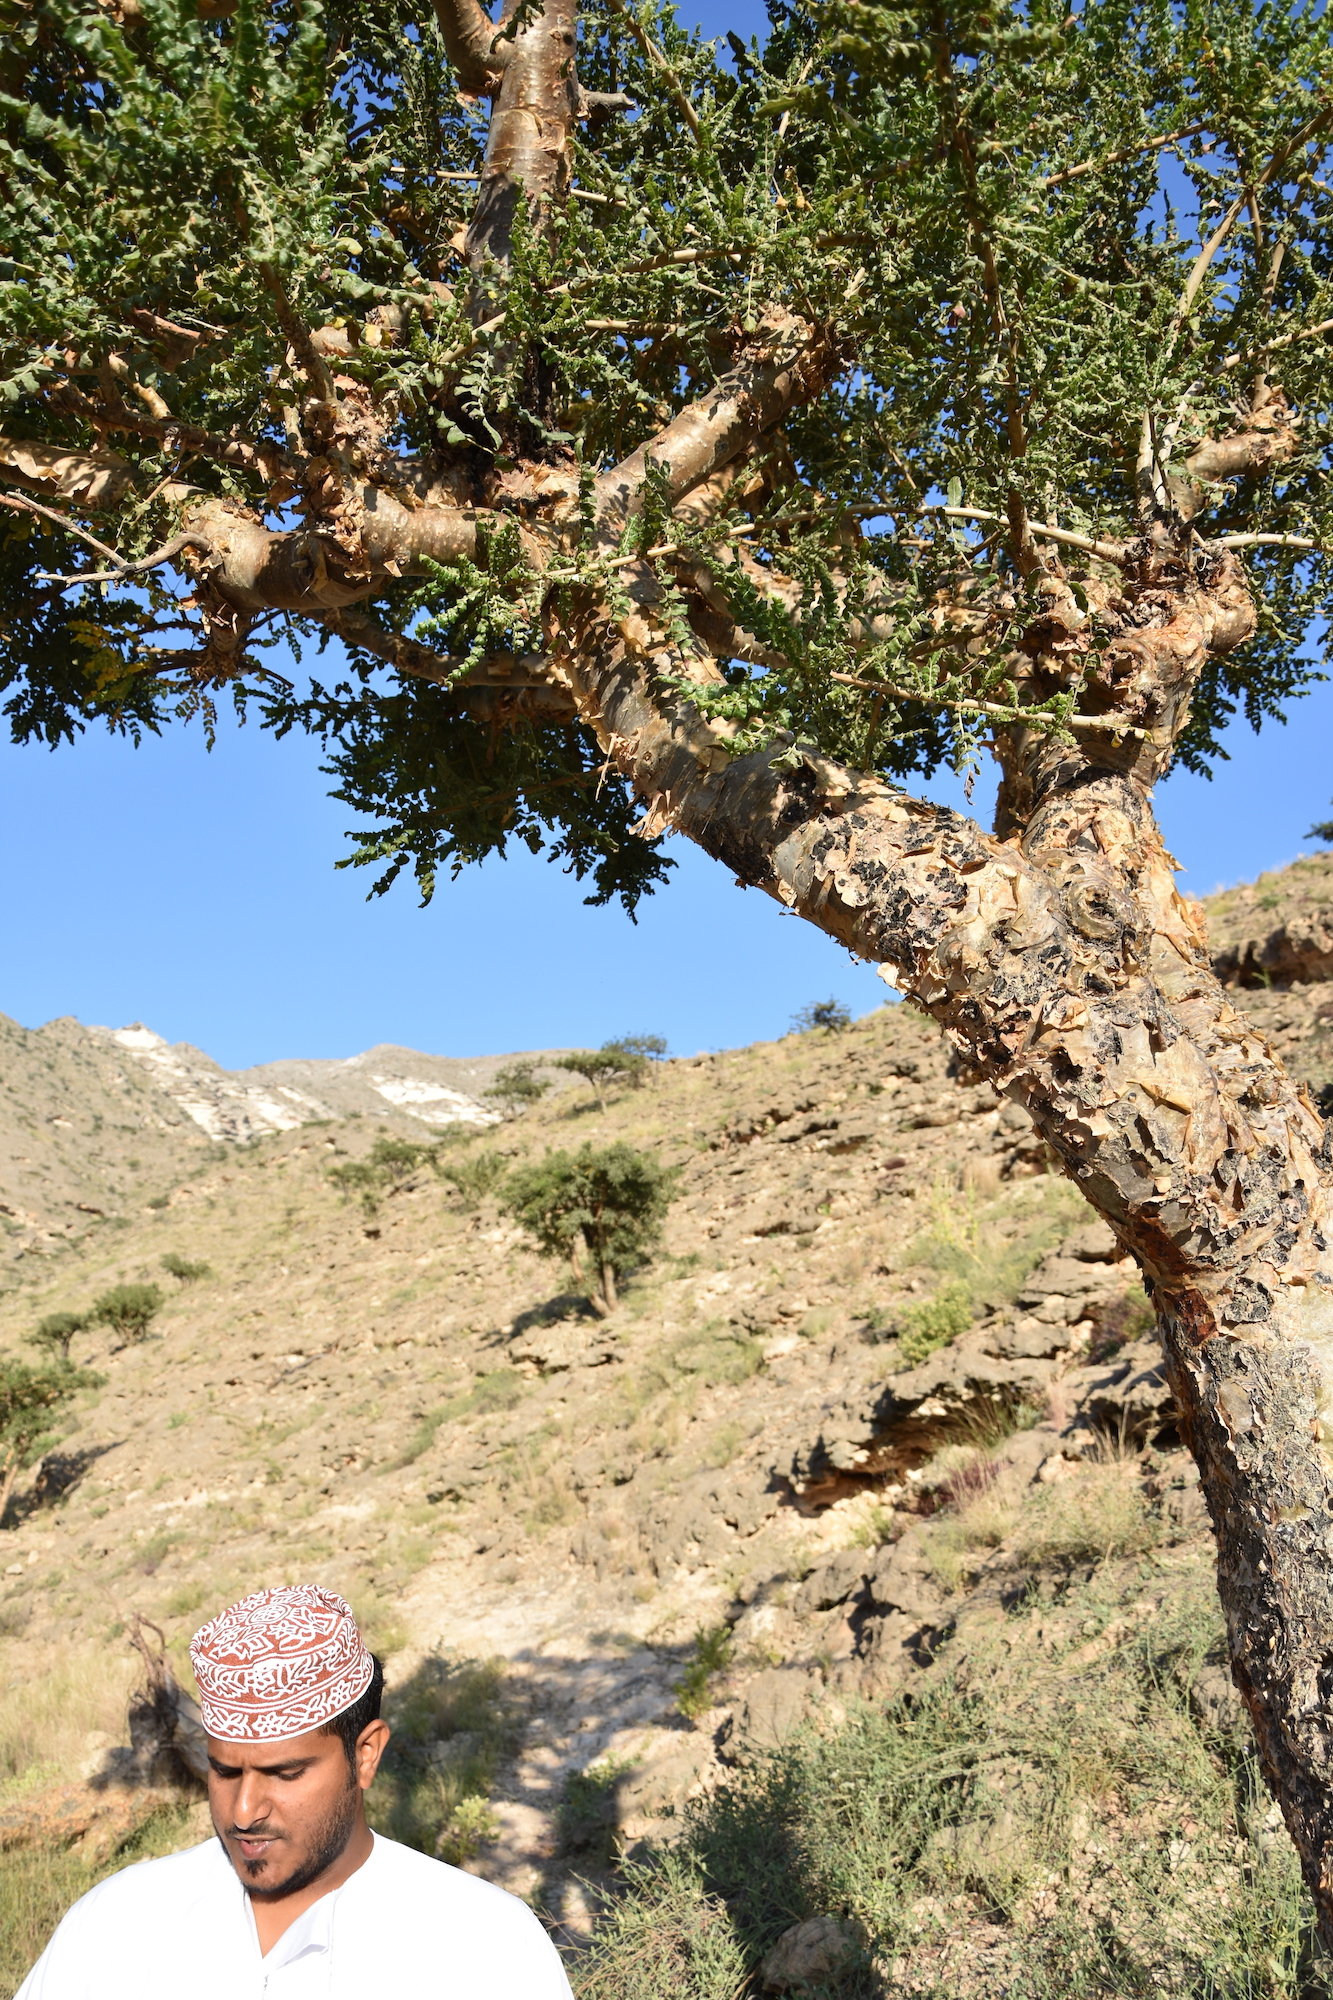 Adnan, my guide, standing underneath the abundant Frankincense tree